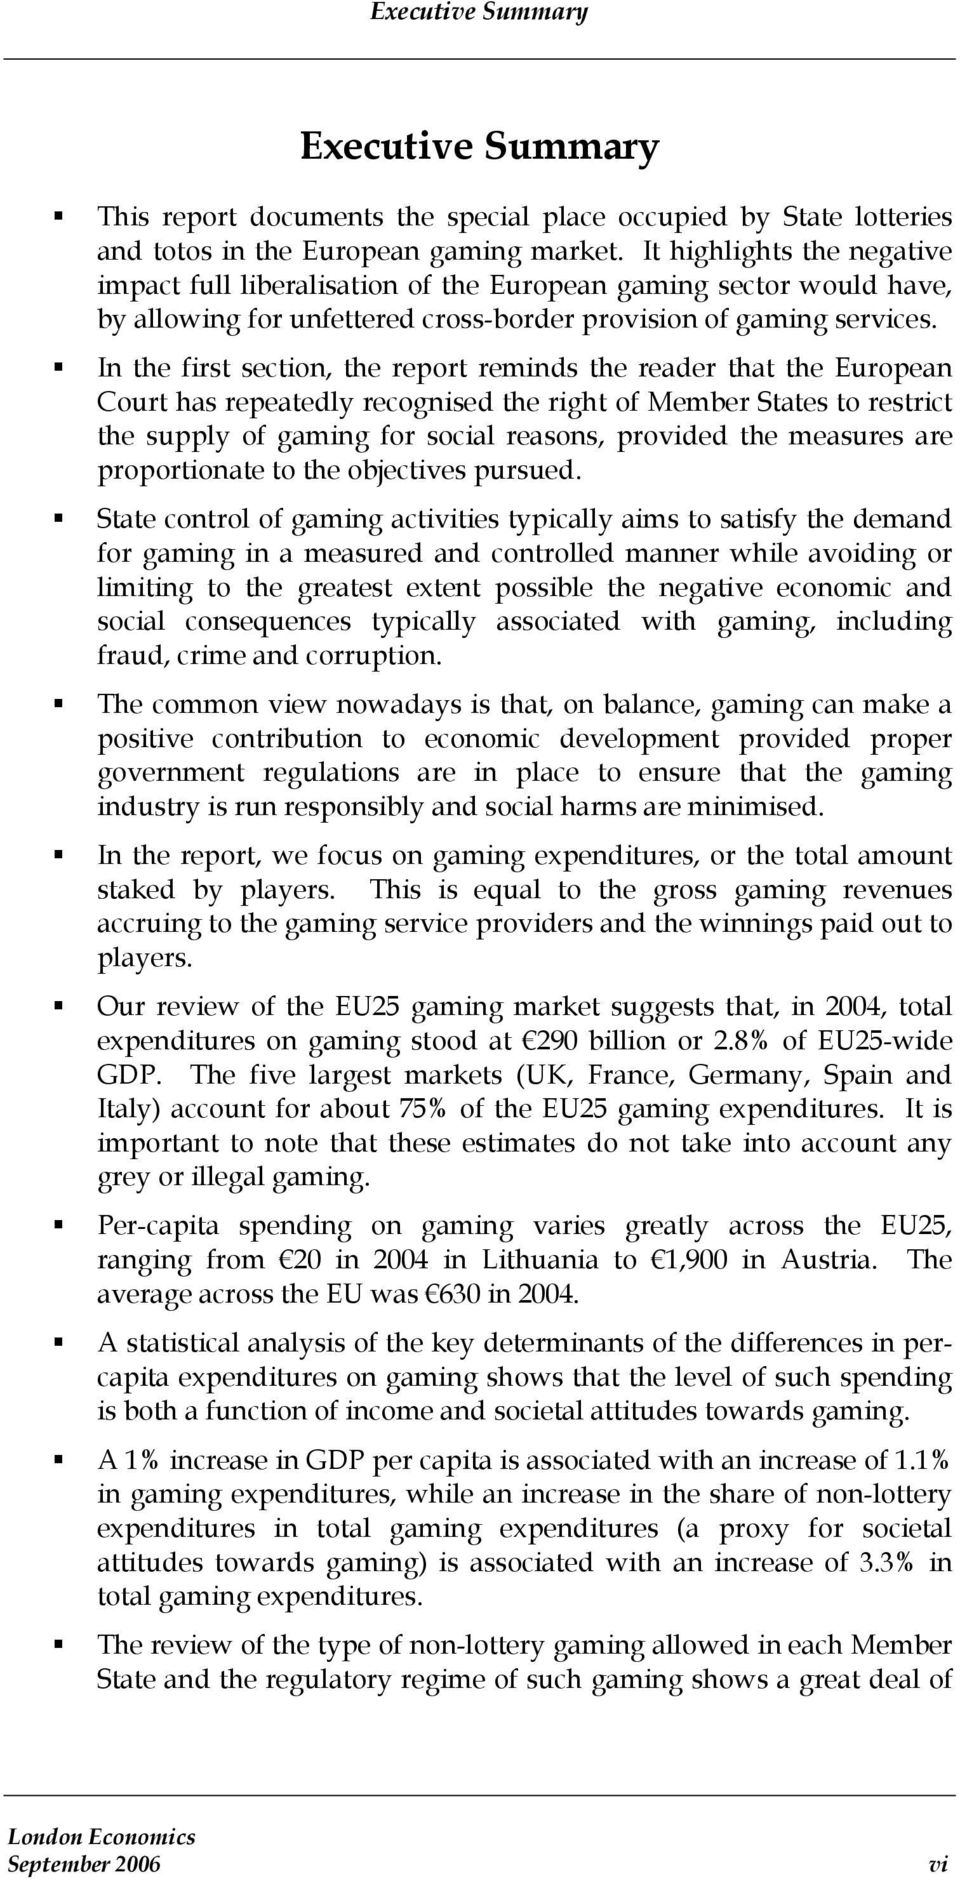 In the first section, the report reminds the reader that the European Court has repeatedly recognised the right of Member States to restrict the supply of gaming for social reasons, provided the